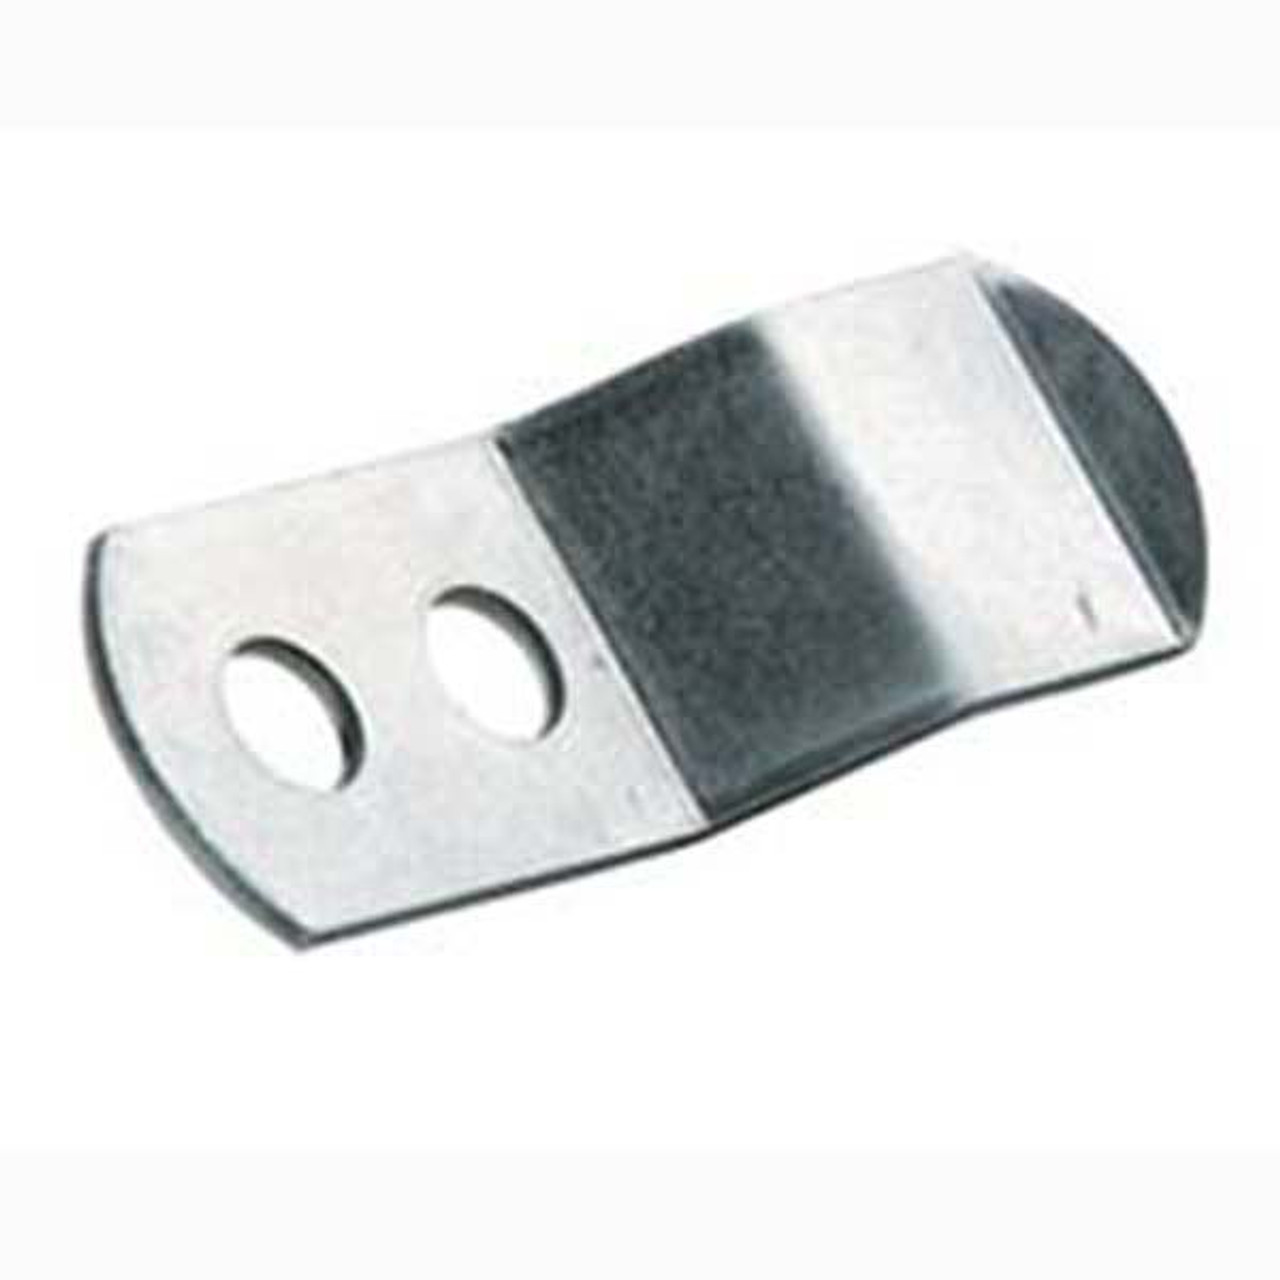 Garelick Upholstery Clip #99136